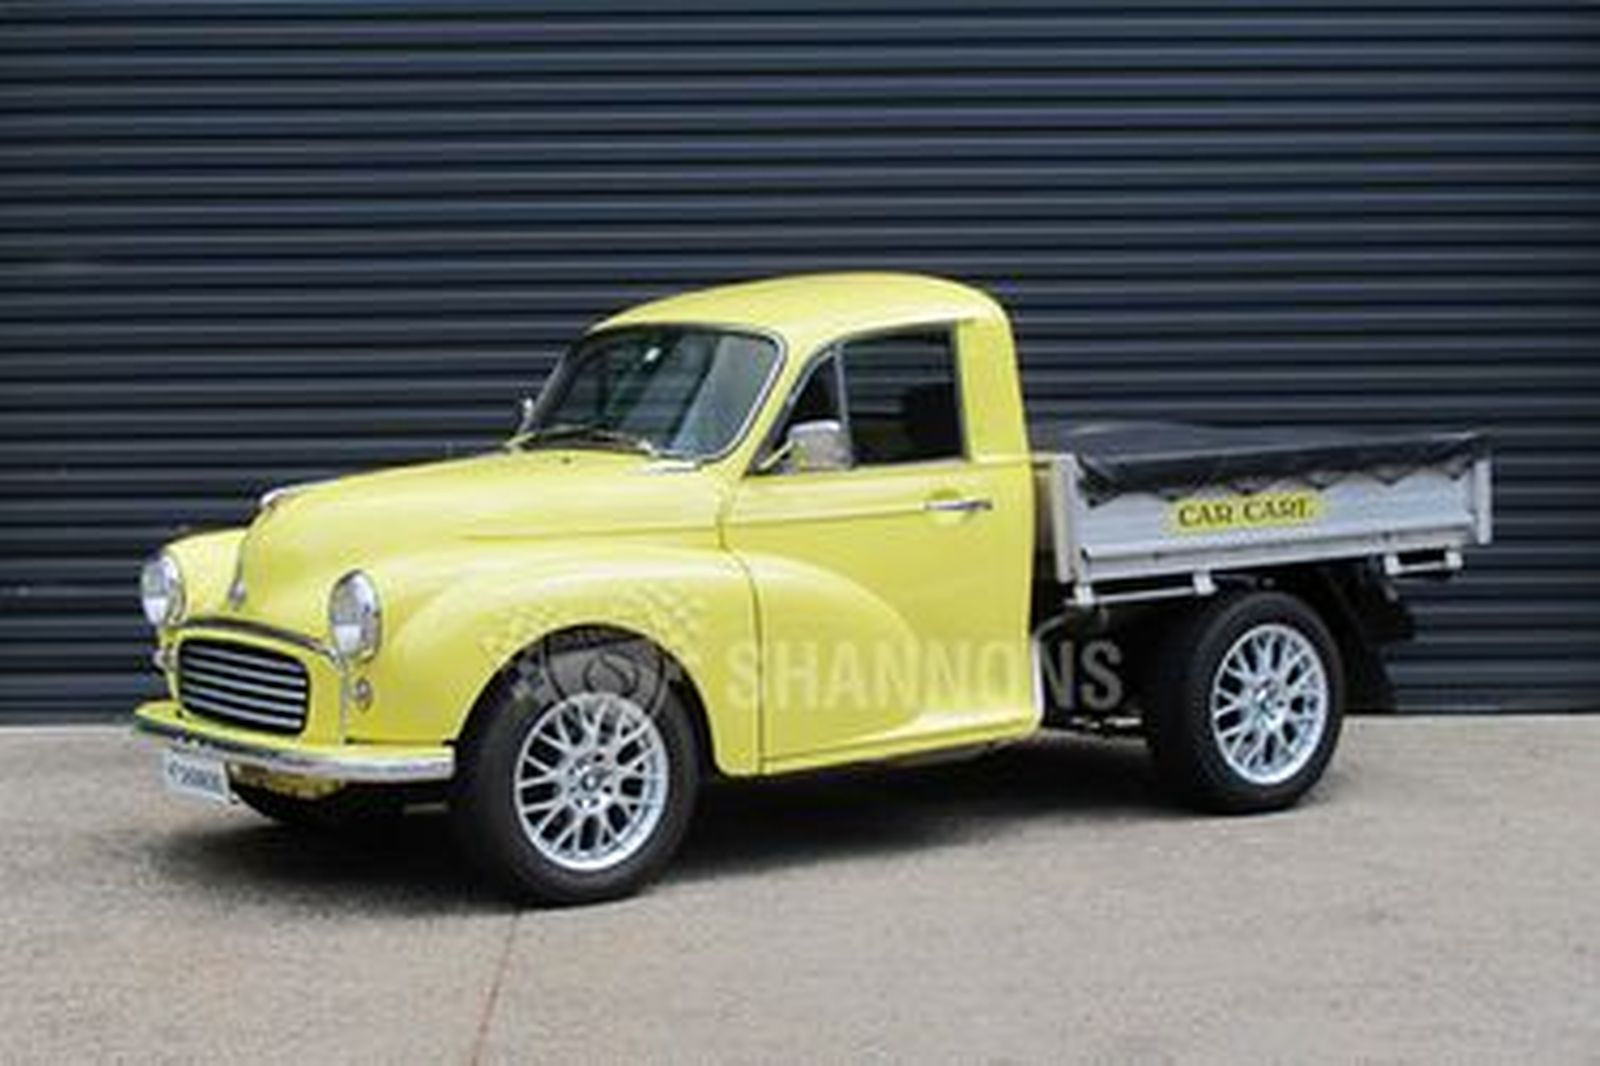 71f2ffa6ca Sold  Morris Minor Utility (Modified) Auctions - Lot 2 - Shannons